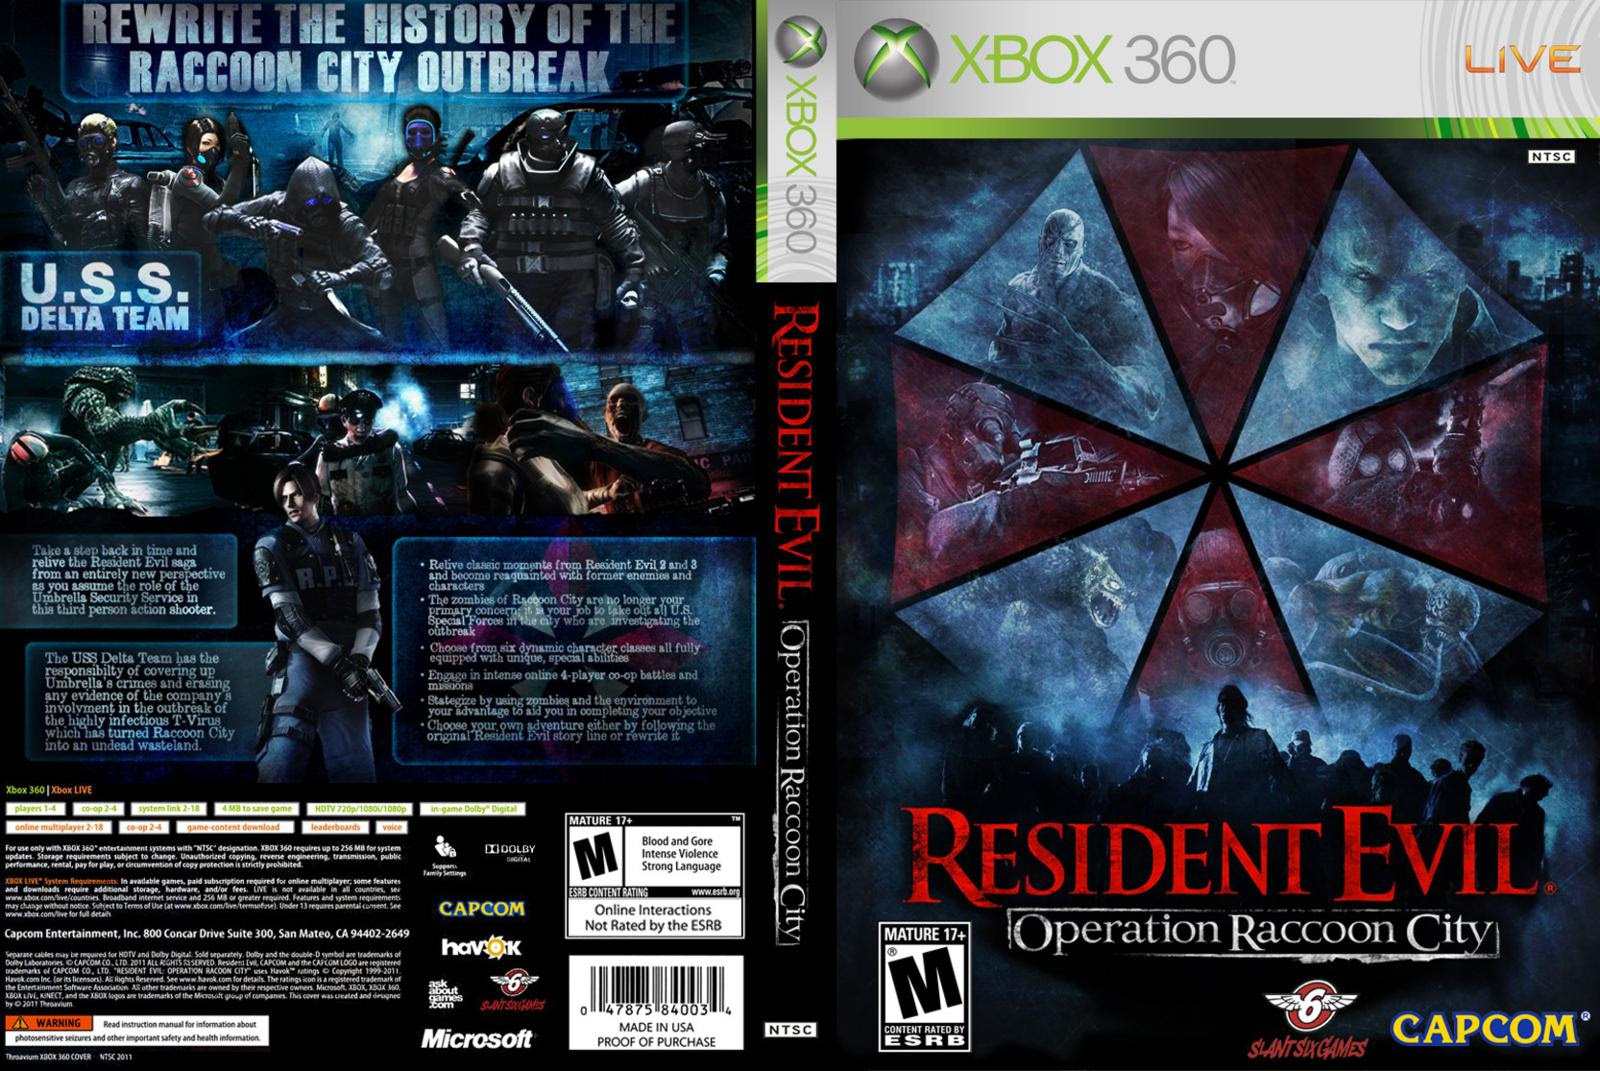 Resident Evil Operation Raccoon City Wallpapers Game Info Center